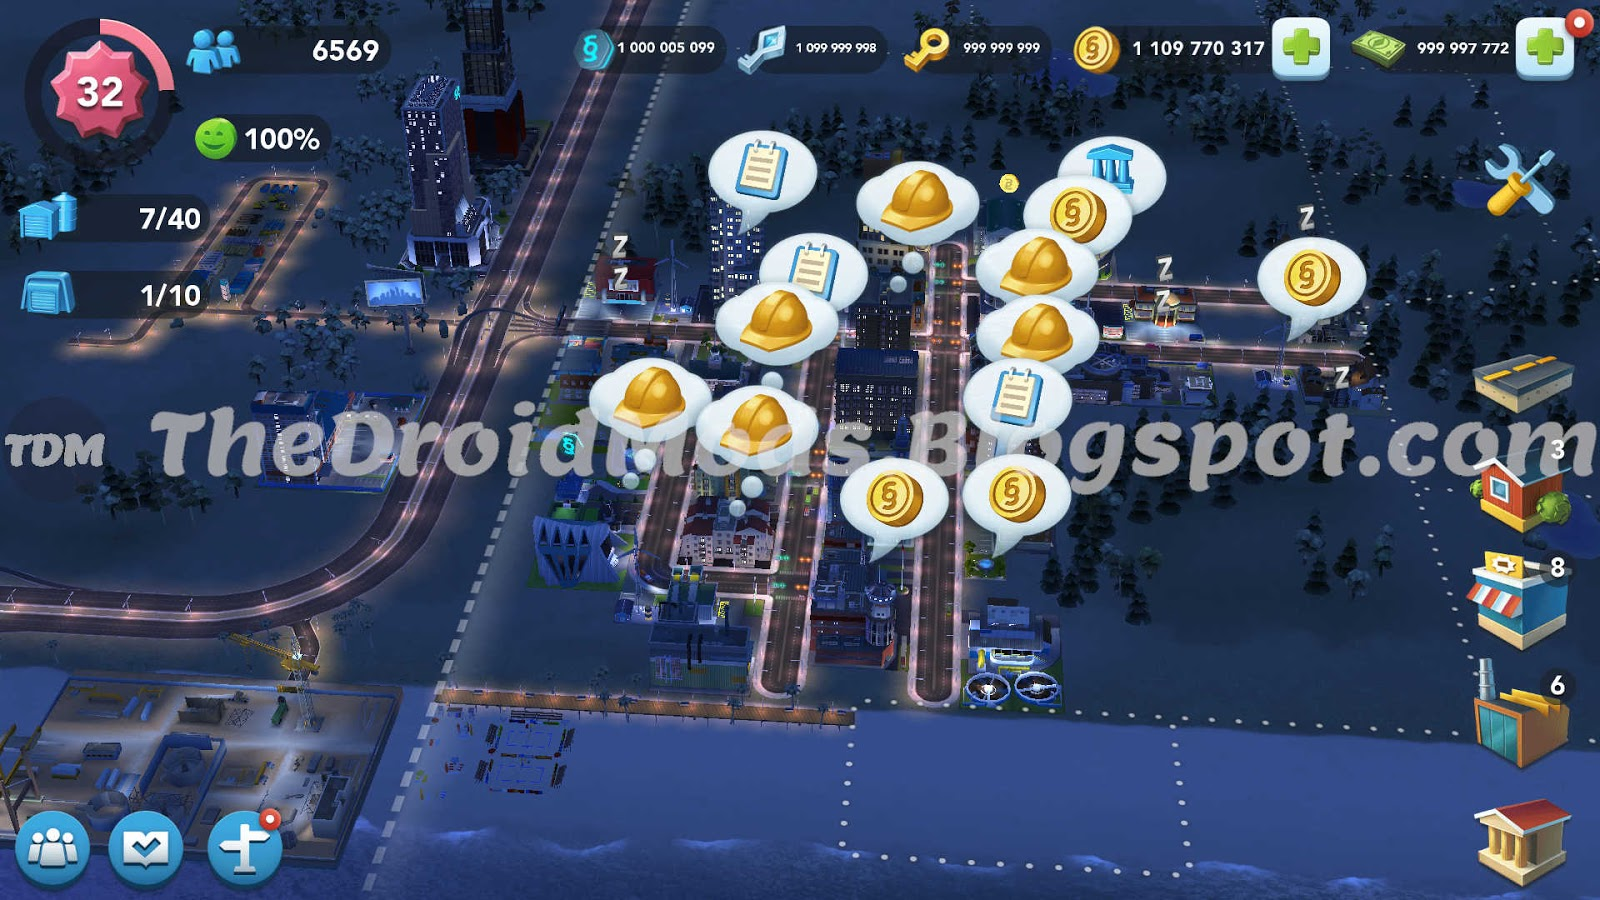 SimCity BuildIt Mod APK/Mega Mod Unlimited Simoleons,SimCash,NeoBank,Gold and Platinum Keys thedroidmods.blogspot.com